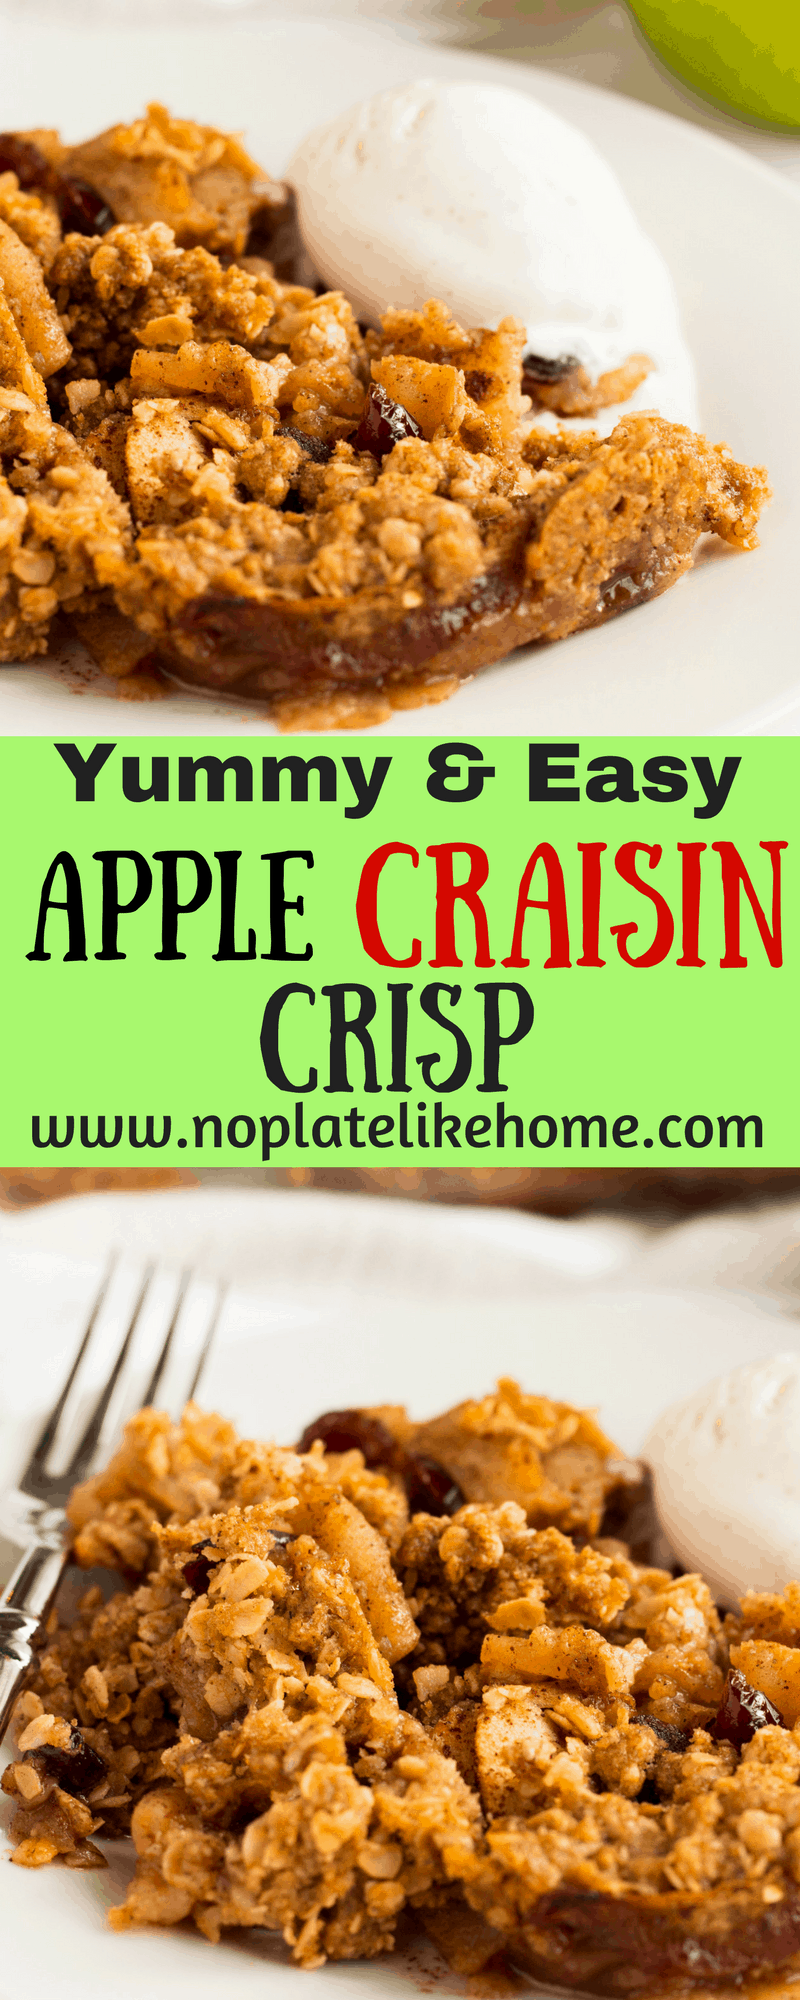 Yummy Easy Apple Craisin Crisp